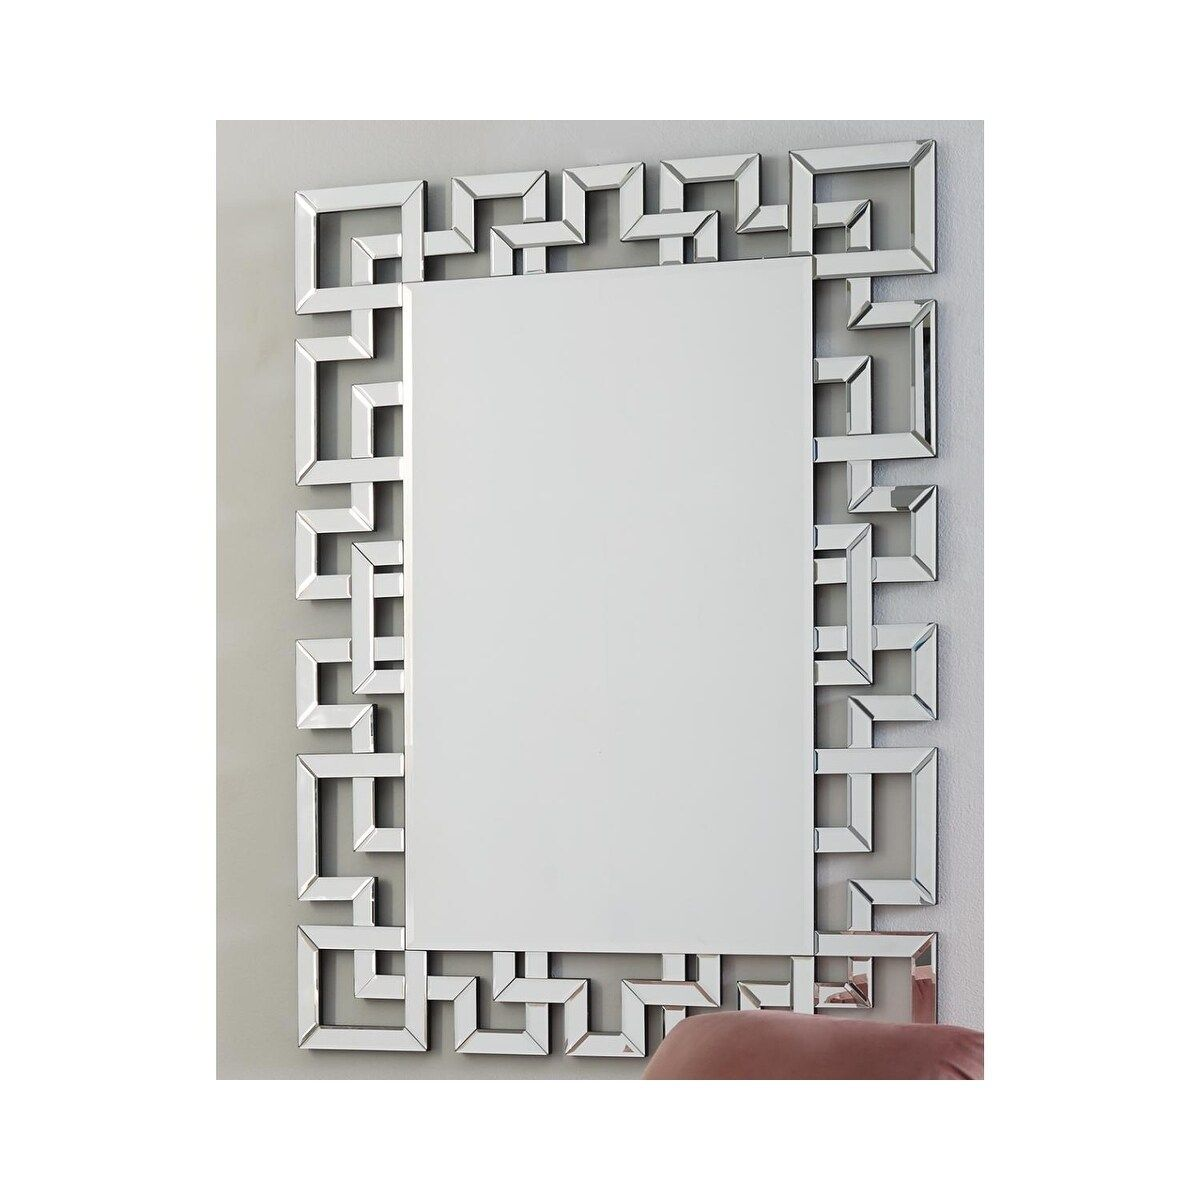 Jasna Contemporary Accent Mirror With Mirror Frame 36 W X 0 62